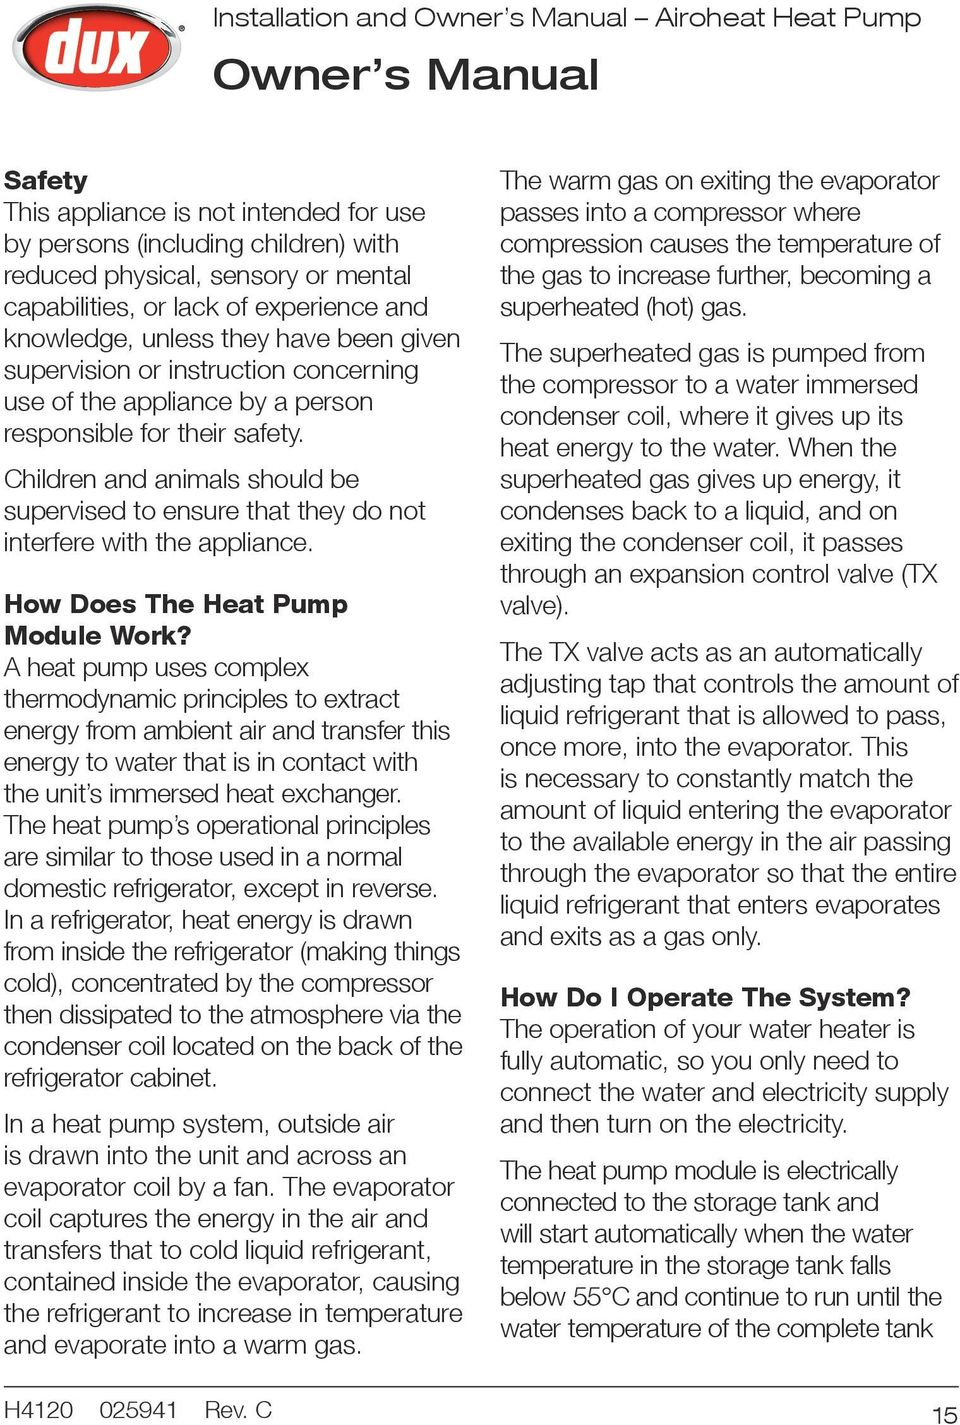 Children and animals should be supervised to ensure that they do not interfere with the appliance. How Does The Heat Pump Module Work?